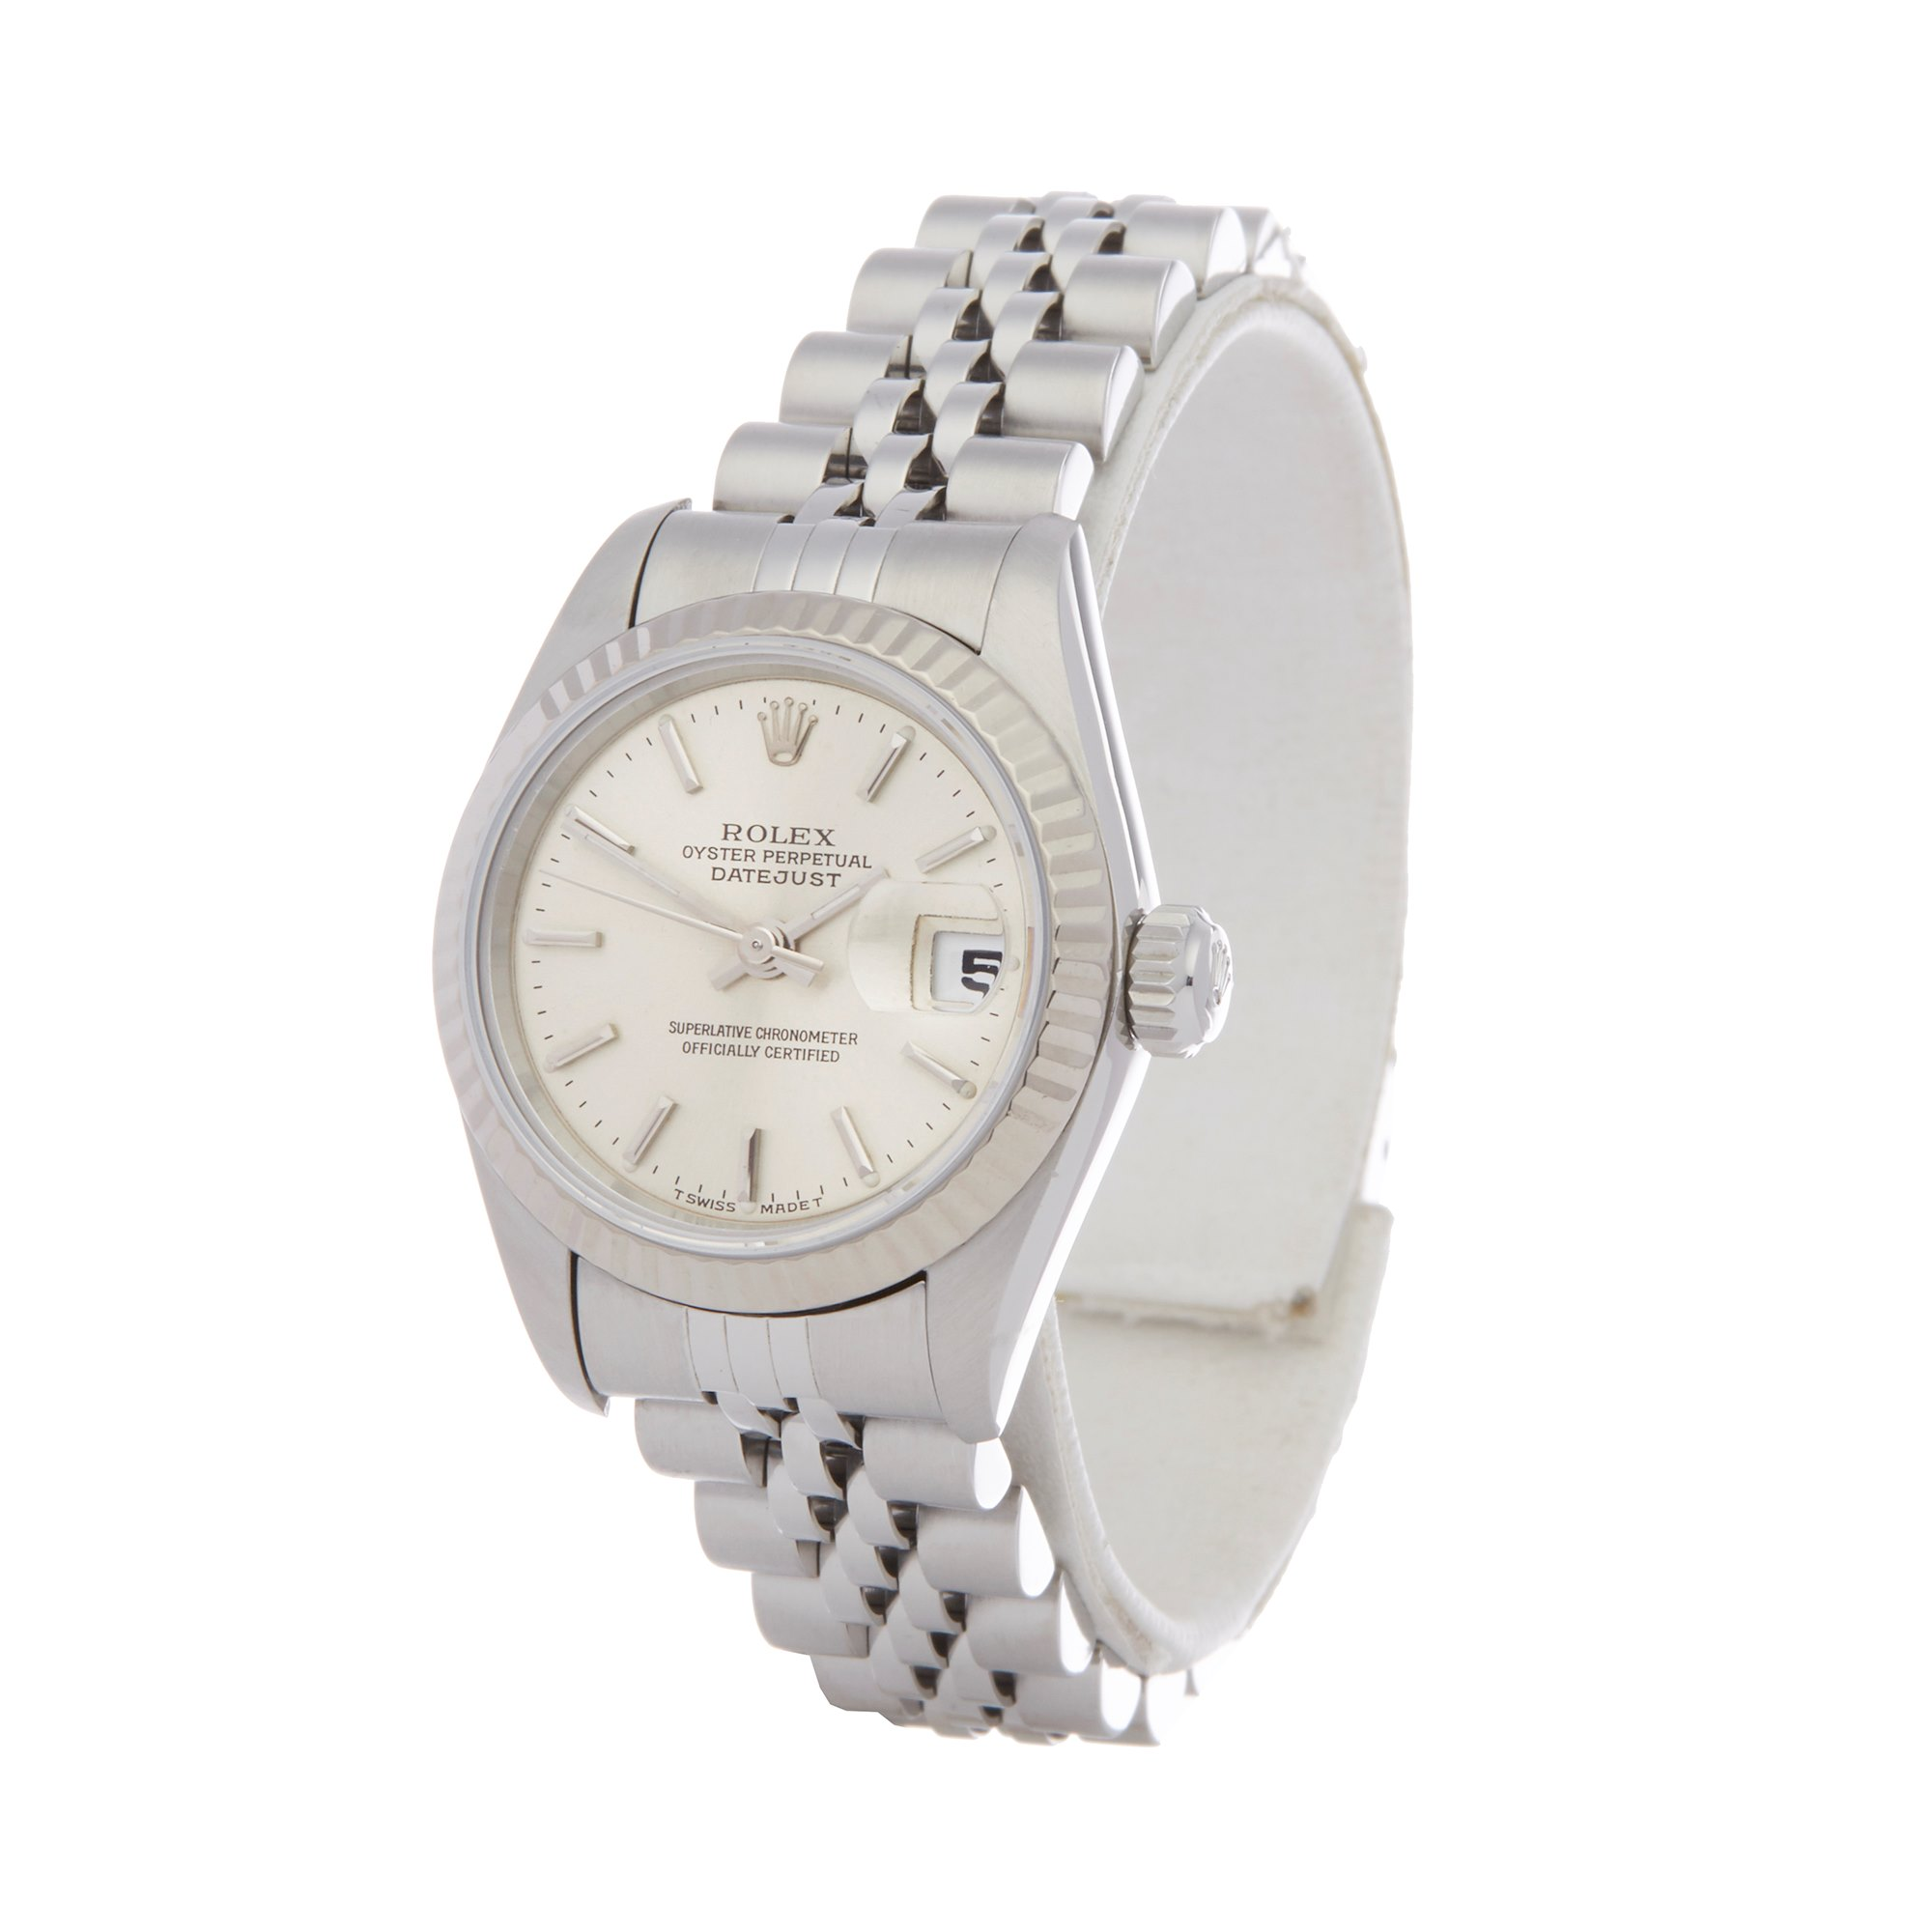 Rolex Datejust 26 69174 Ladies Stainless Steel Watch - Image 6 of 8